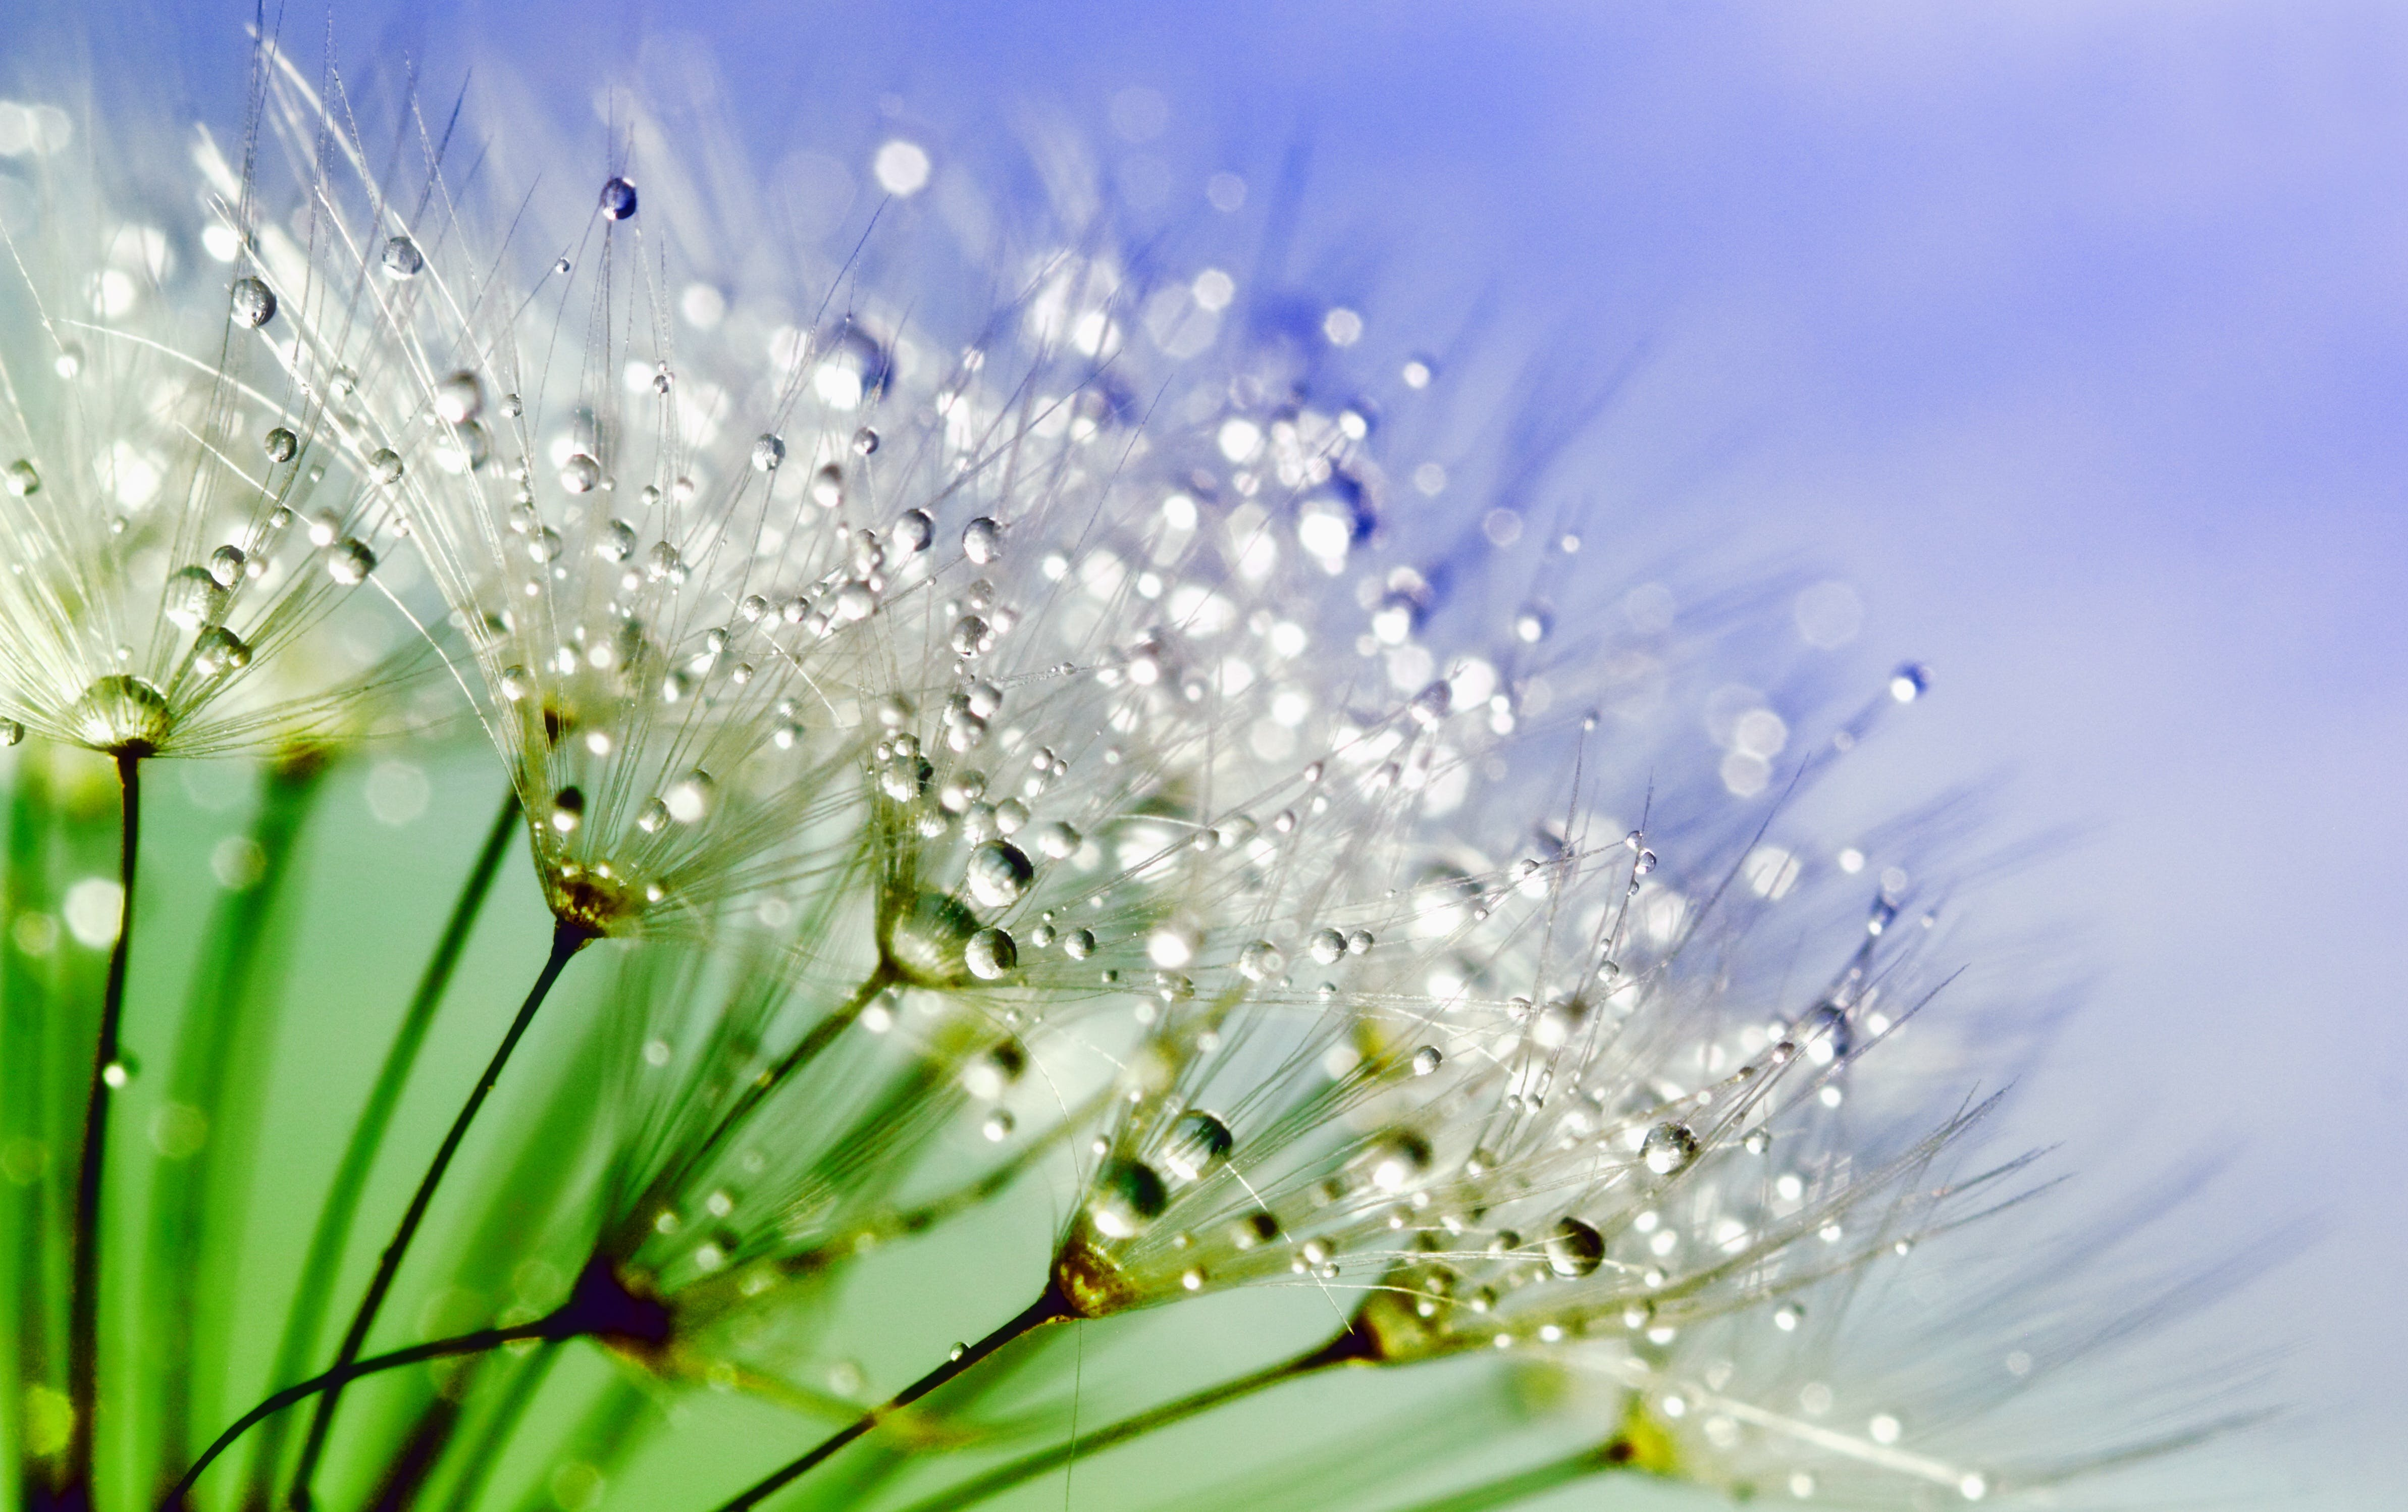 White Flowers With Water Droplets in Macro Shot